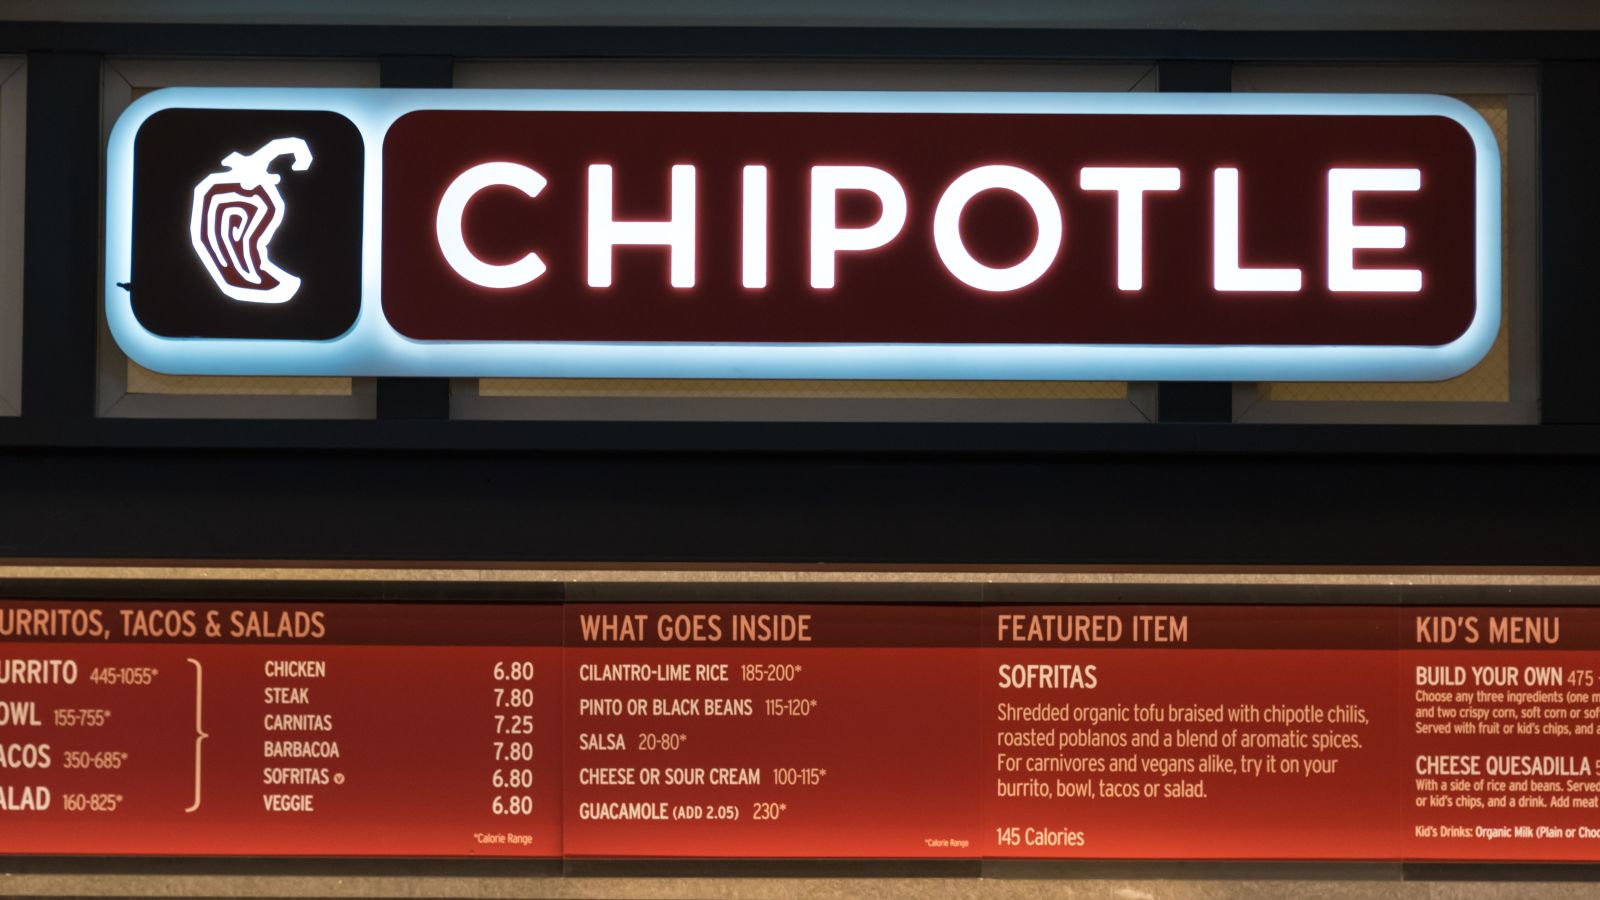 Chipotles late night menu aims to take on Taco Bells primacy 1600x900